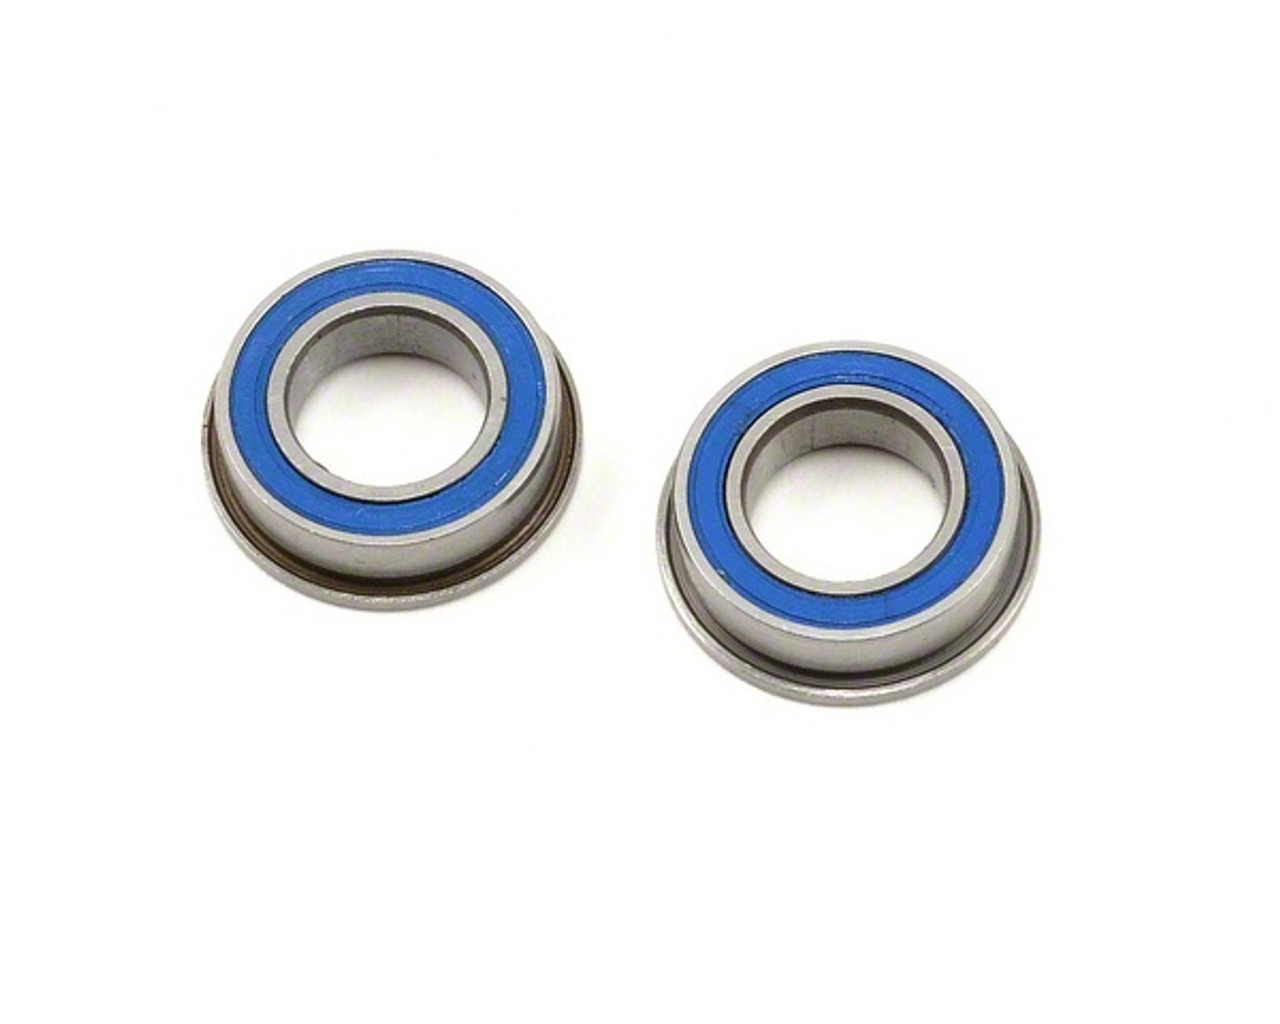 Bearings Metric Series 6x12x4 MM Flanged Rubber Sealed (10 Pack) (MF126 2RS)